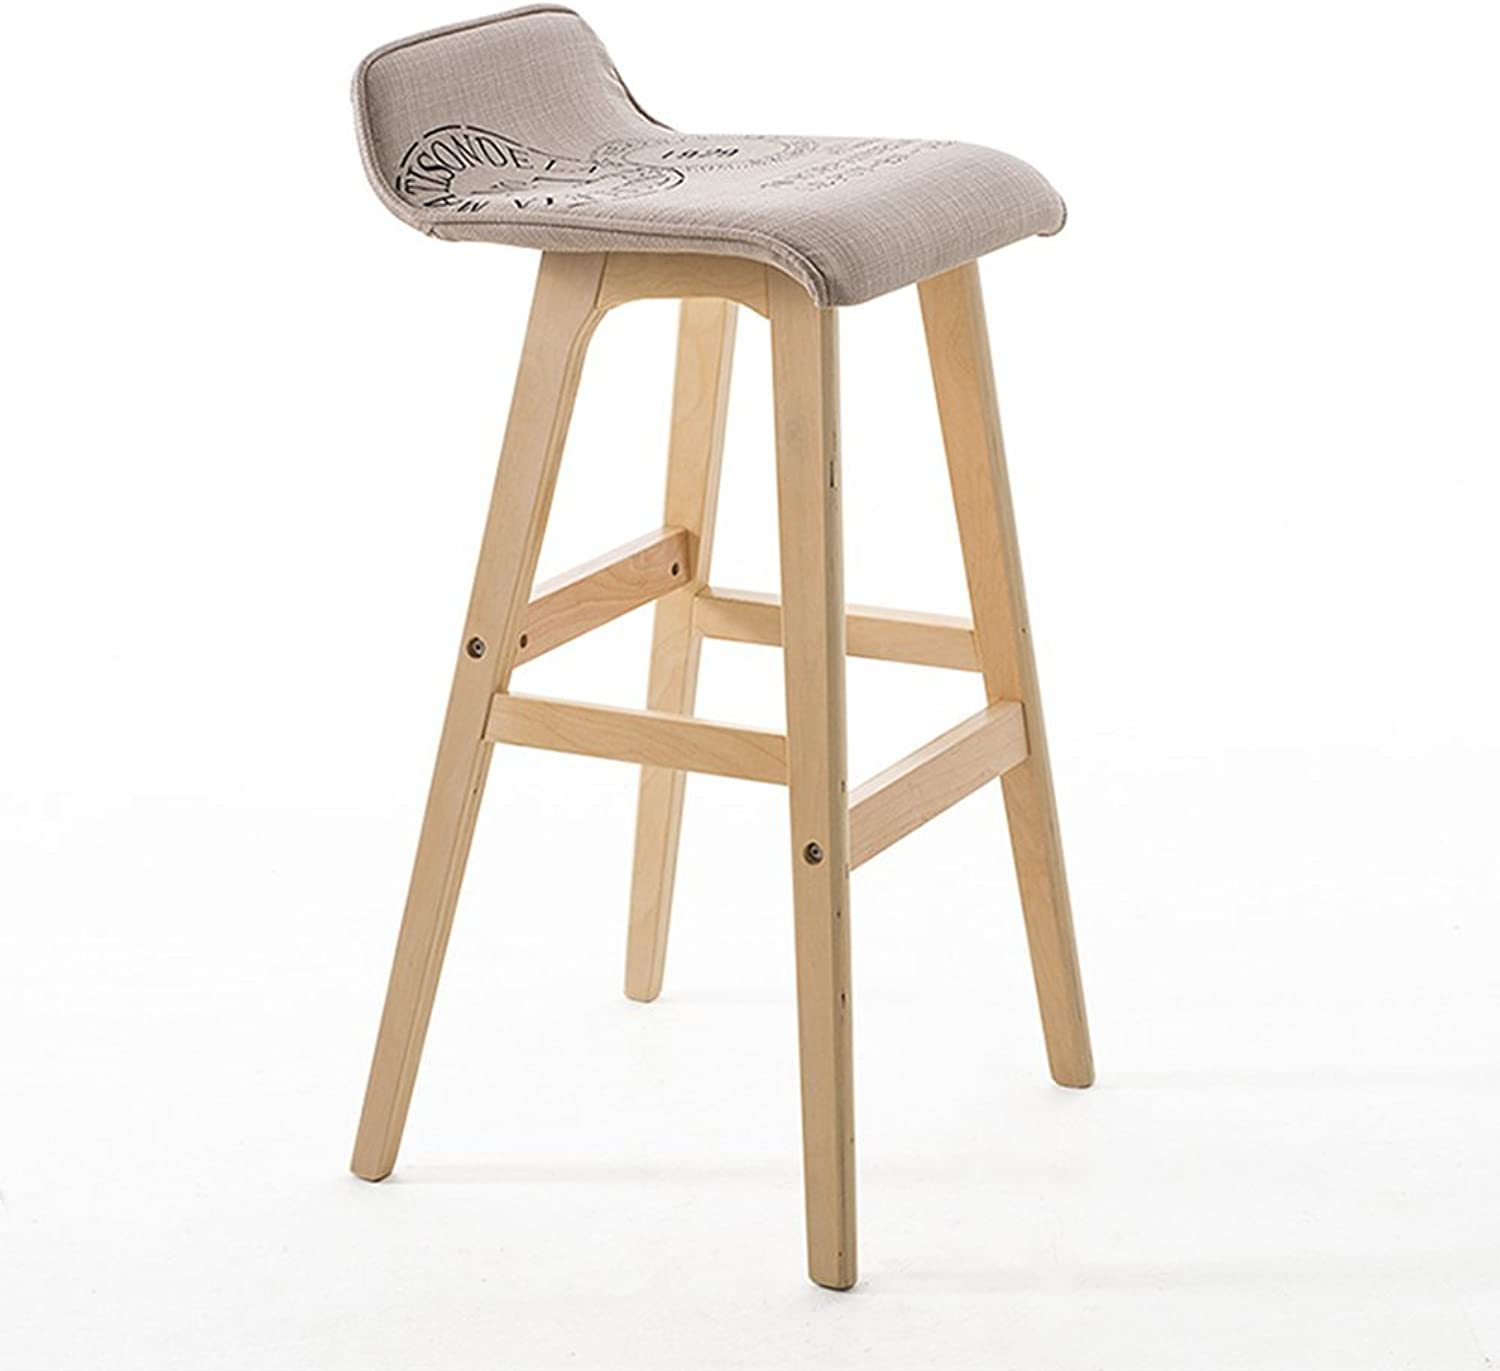 ZHIRONG Bar Stool Fashion Solid Wood Frame Cloth Seat Kitchen Breakfast Chair (color   B, Size   74cm)